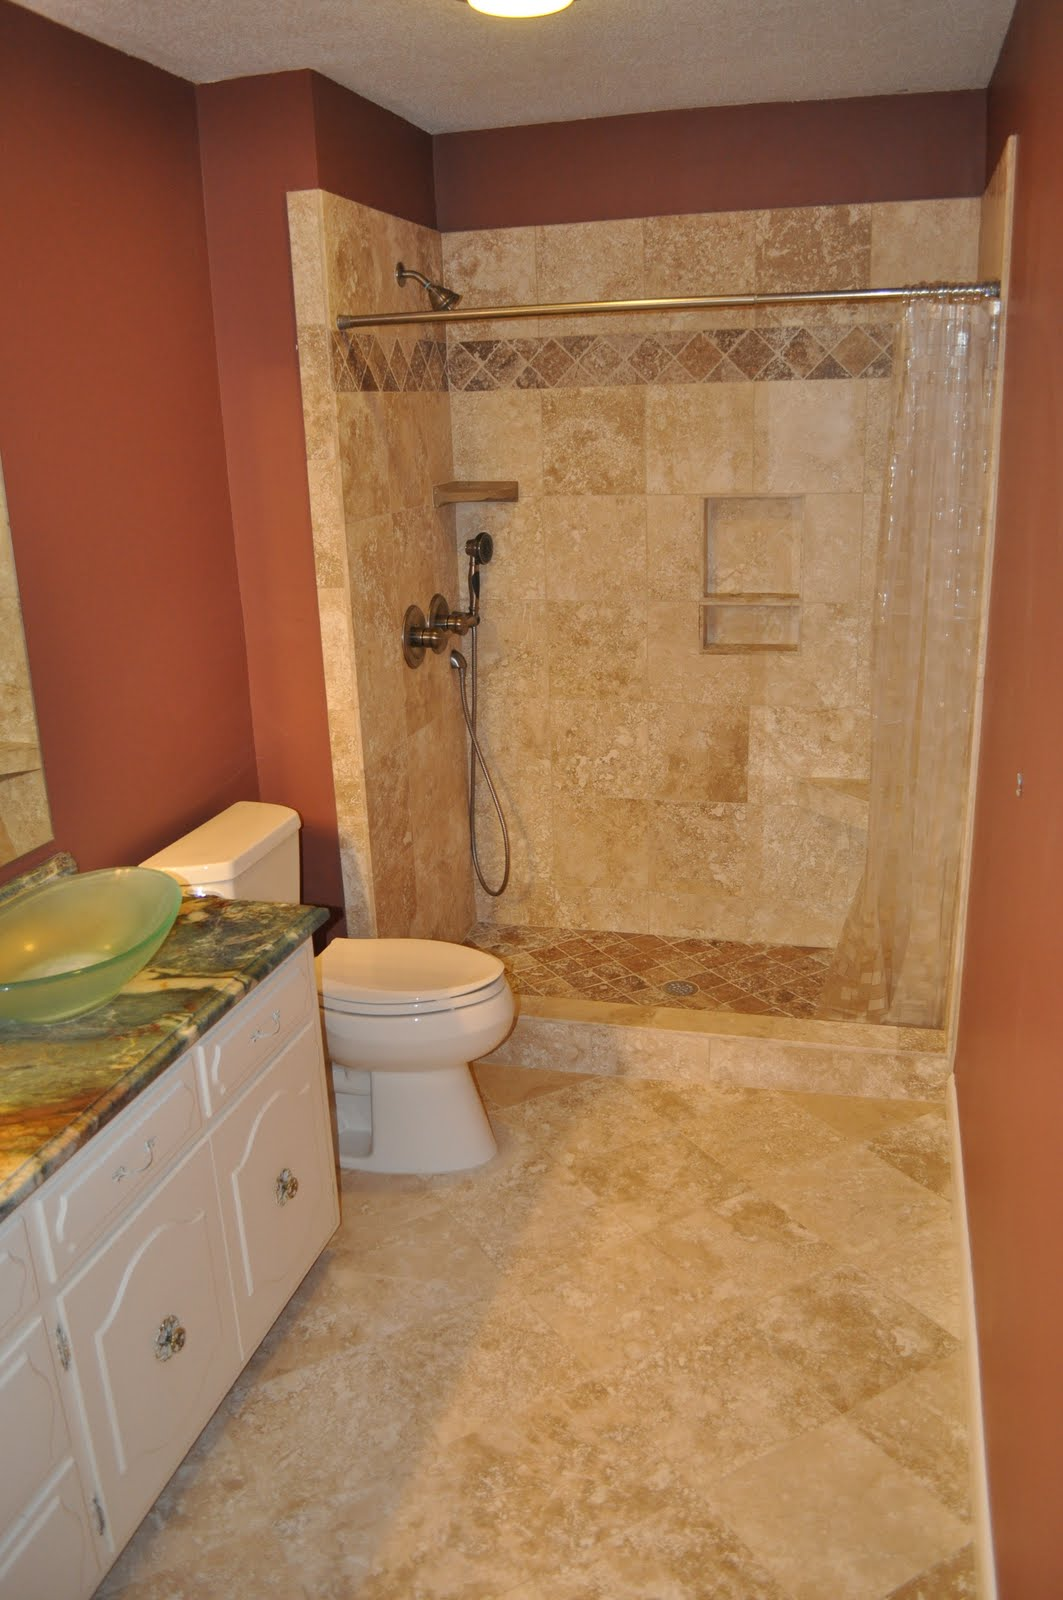 Bathroom Tiles Renovation easy bathroom renovations. image of inexpensive bathroom